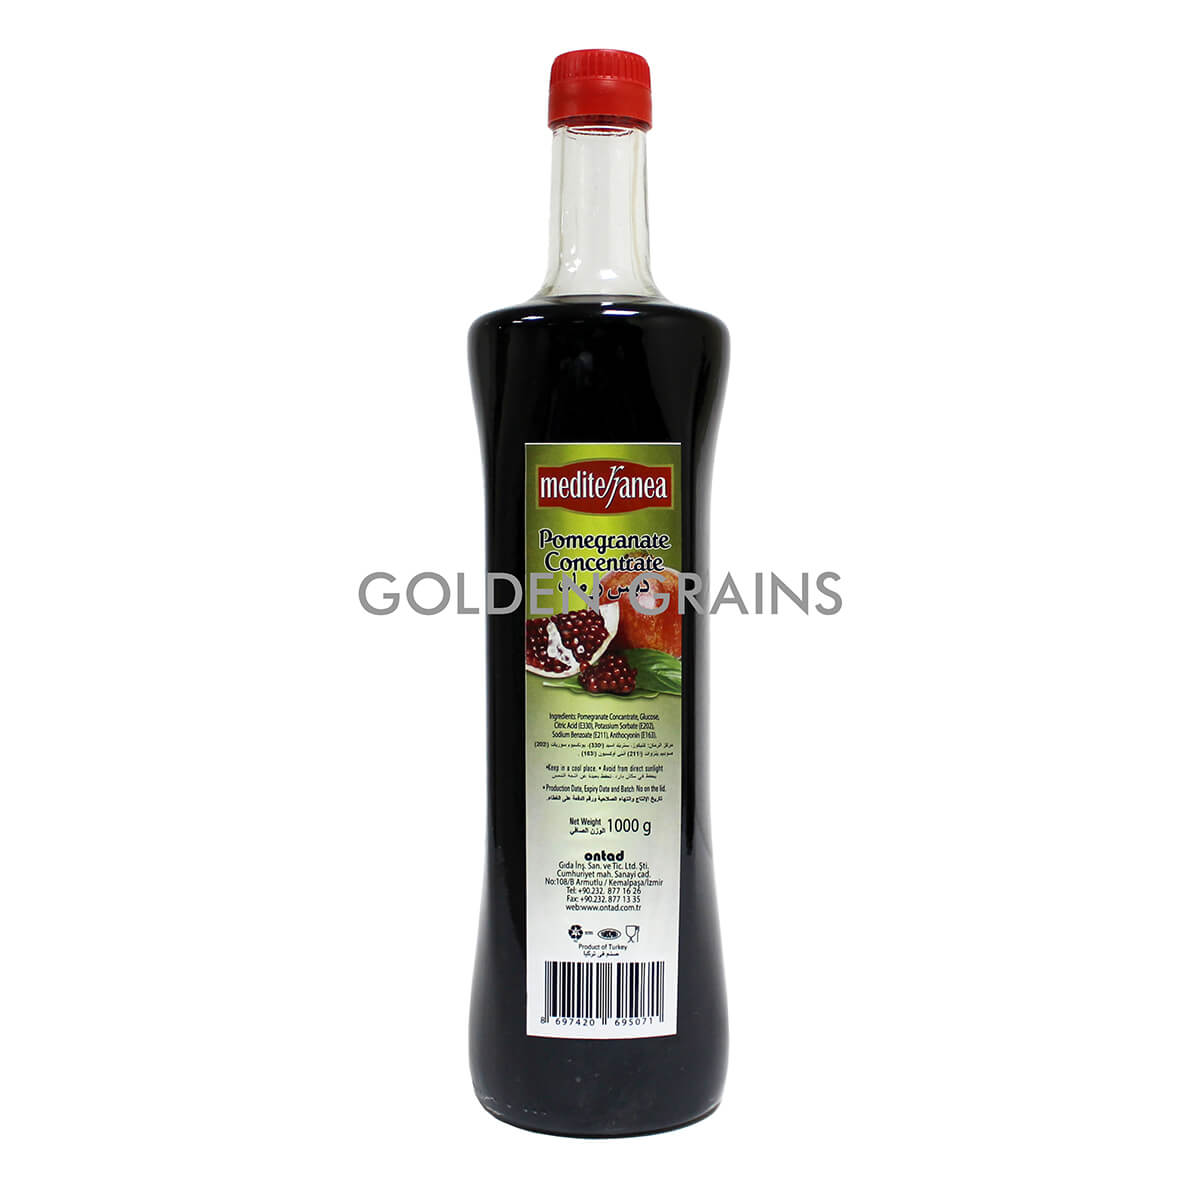 Golden Grains Dubai Export - Mediterranea - Pomegranate - Front.jpg